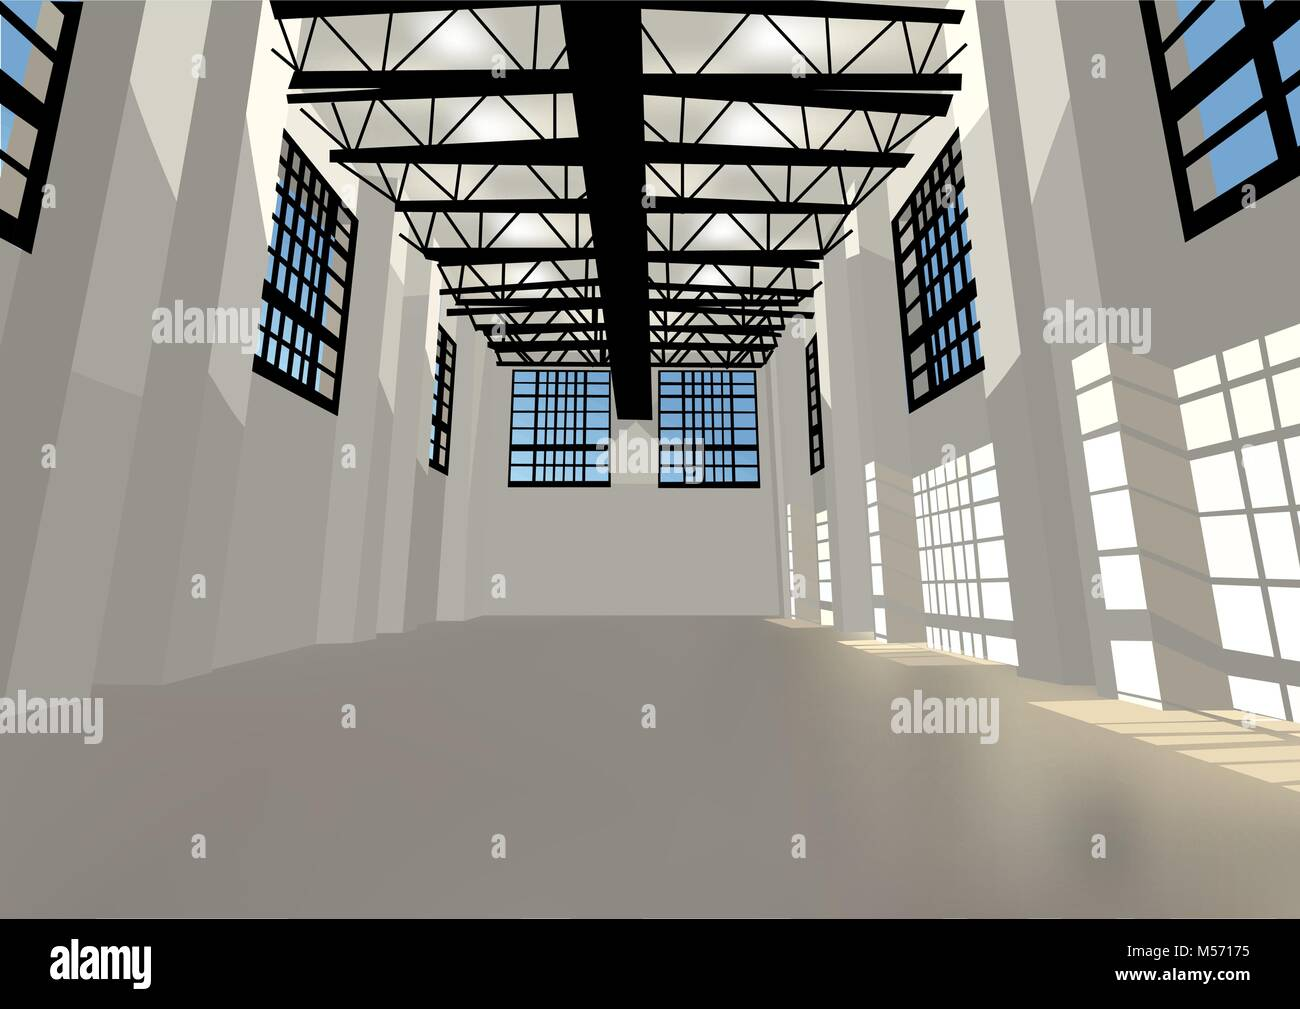 Industrial Warehouse With Windows And Led Lighting Stock Vector Image Art Alamy